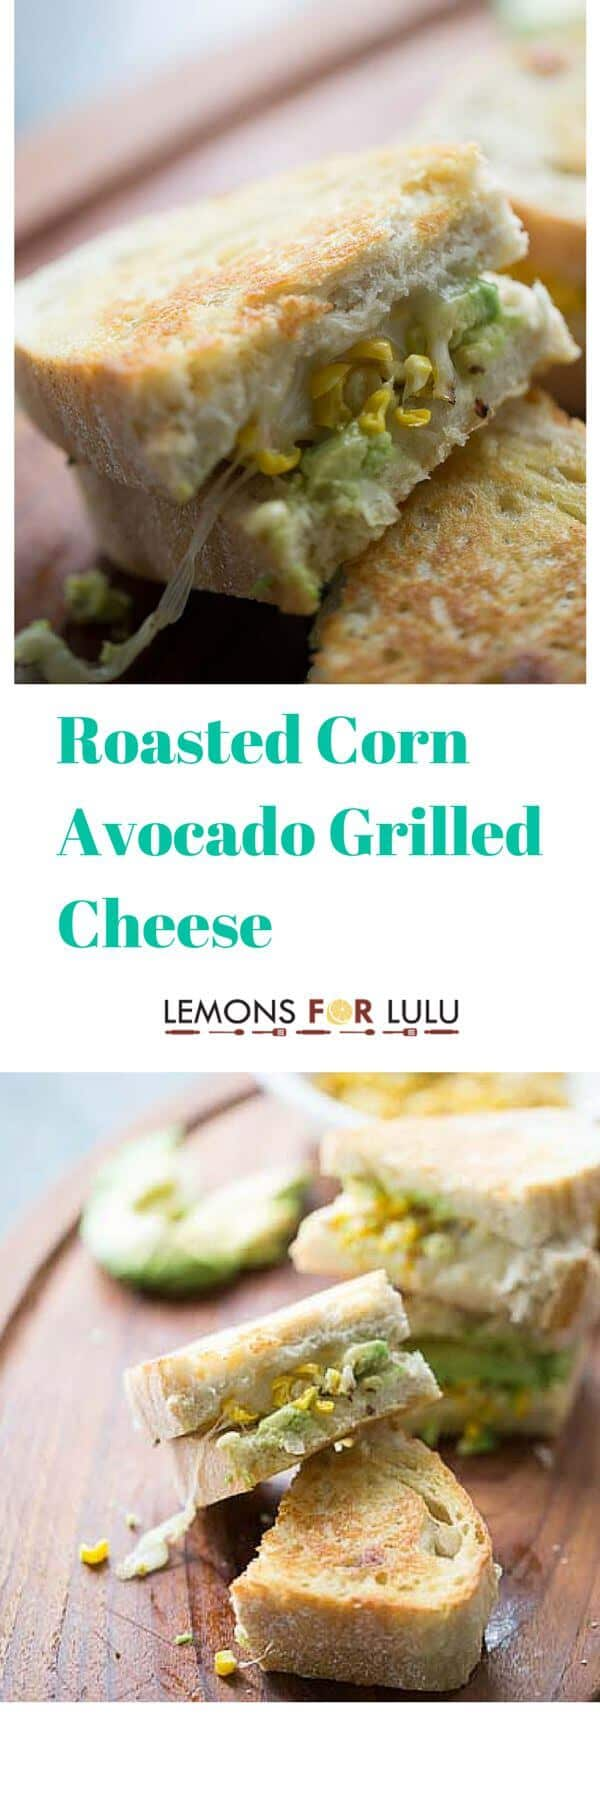 A grilled cheese like no other! Smoky grilled corn, avocados and spicy cheese make this sandwich stand out from the crowd! lemonsforlulu.com